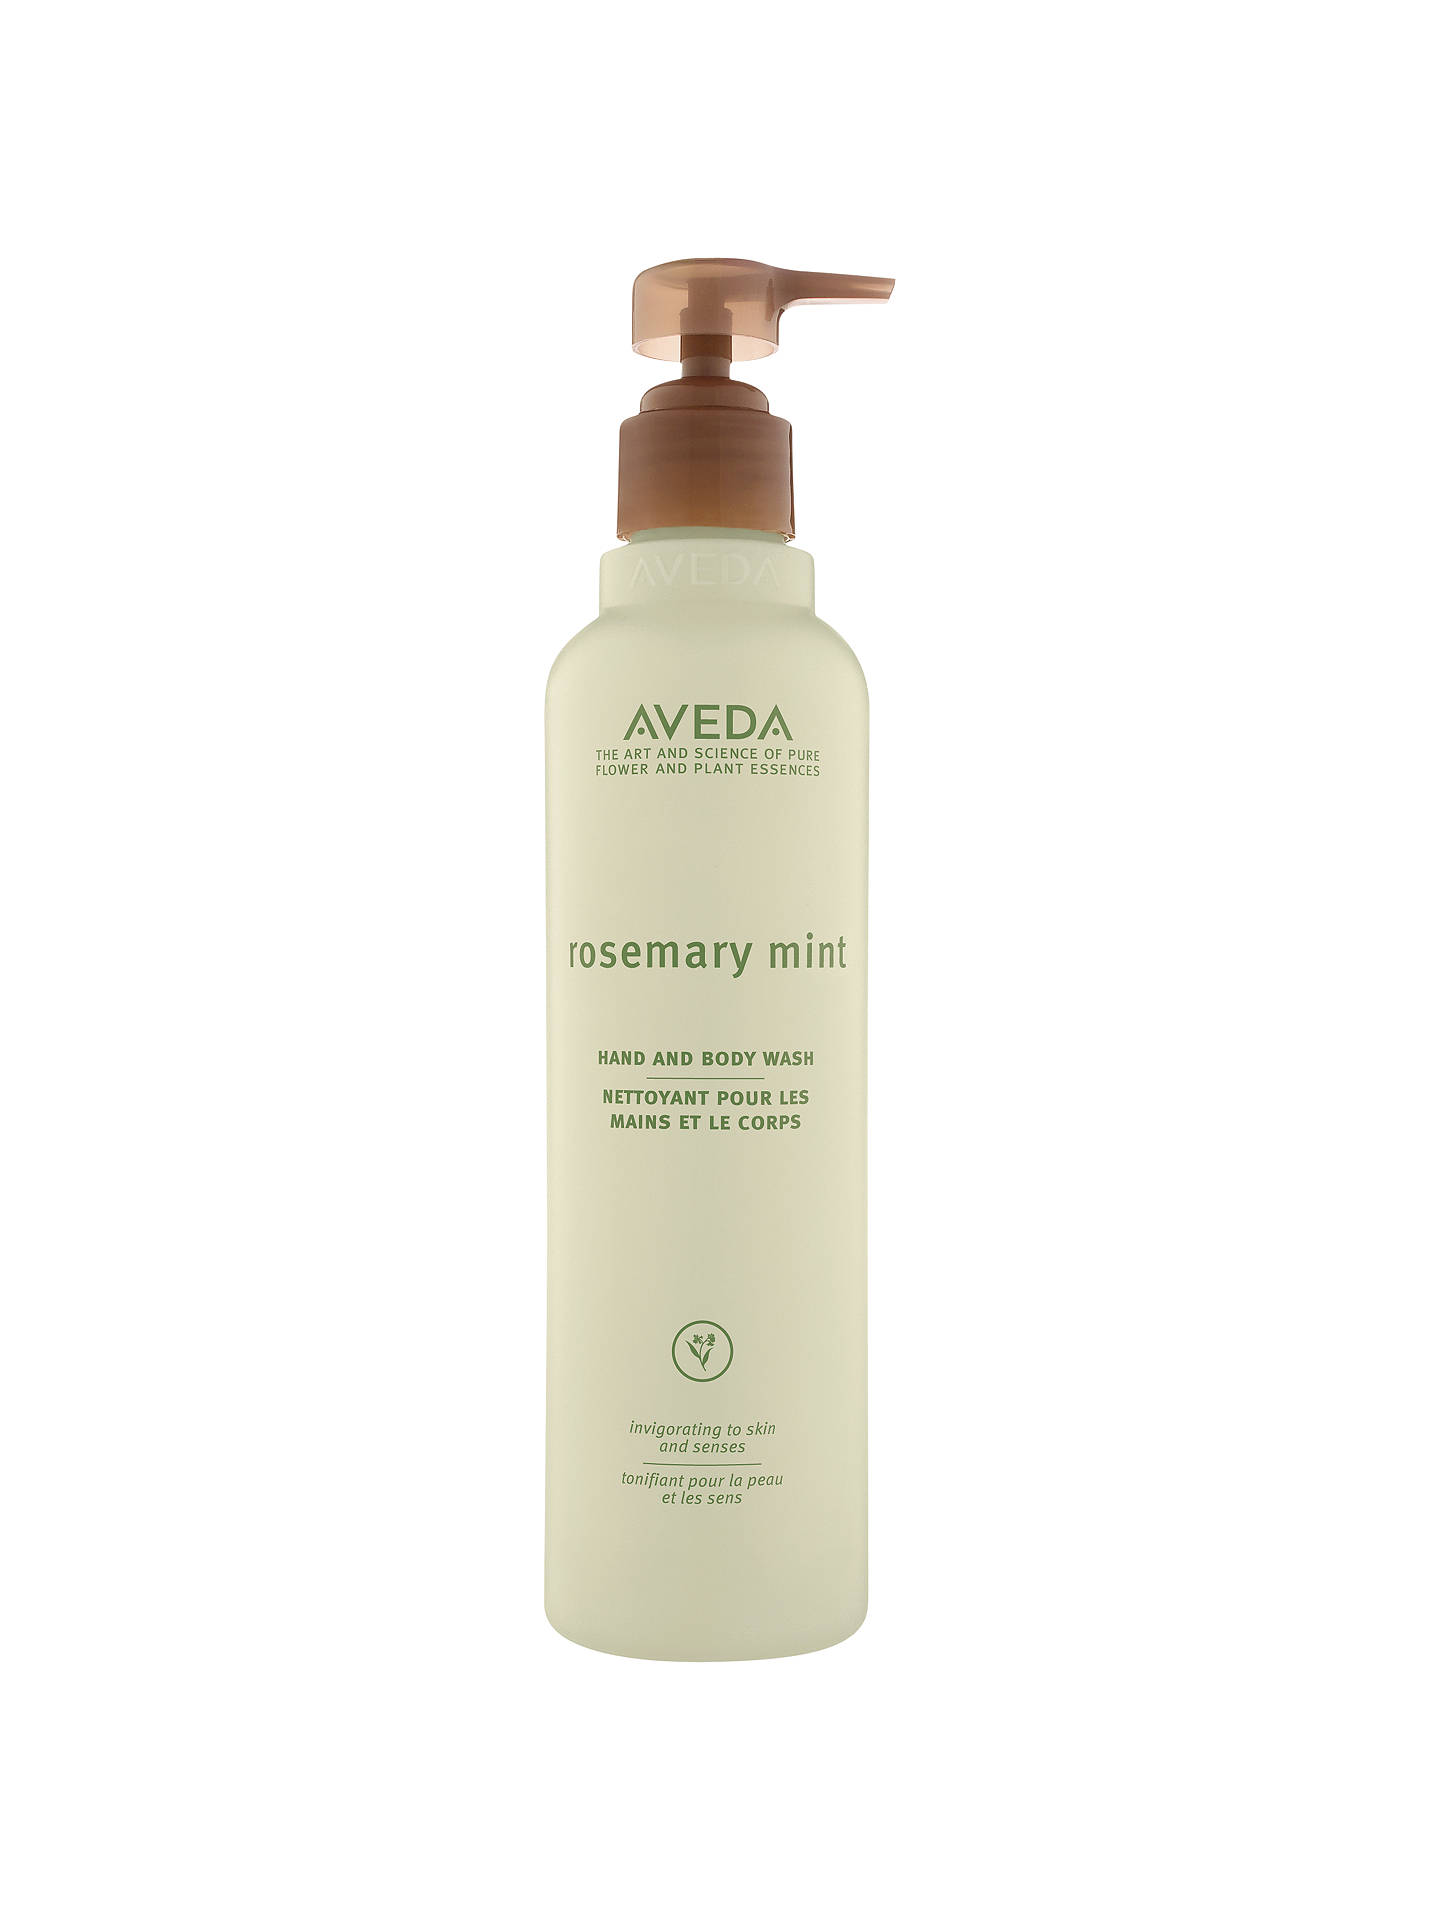 Buy Aveda Rosemary Mint Hand and Body Wash, 250ml Online at johnlewis.com